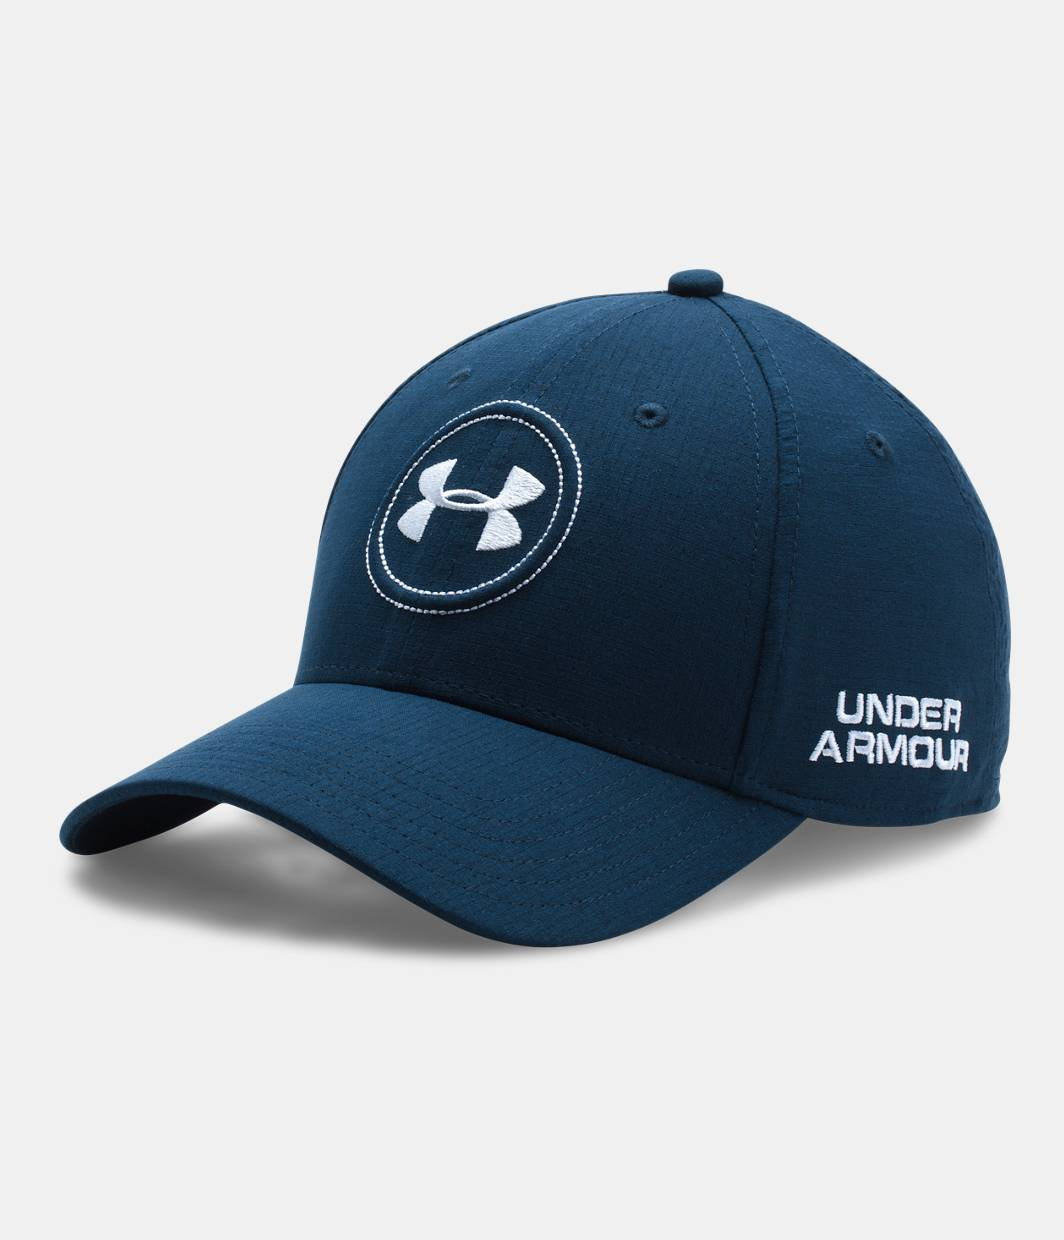 Mens golf hats headwear under armour us mens ua golf official tour cap 20 1 color available 2999 thecheapjerseys Image collections